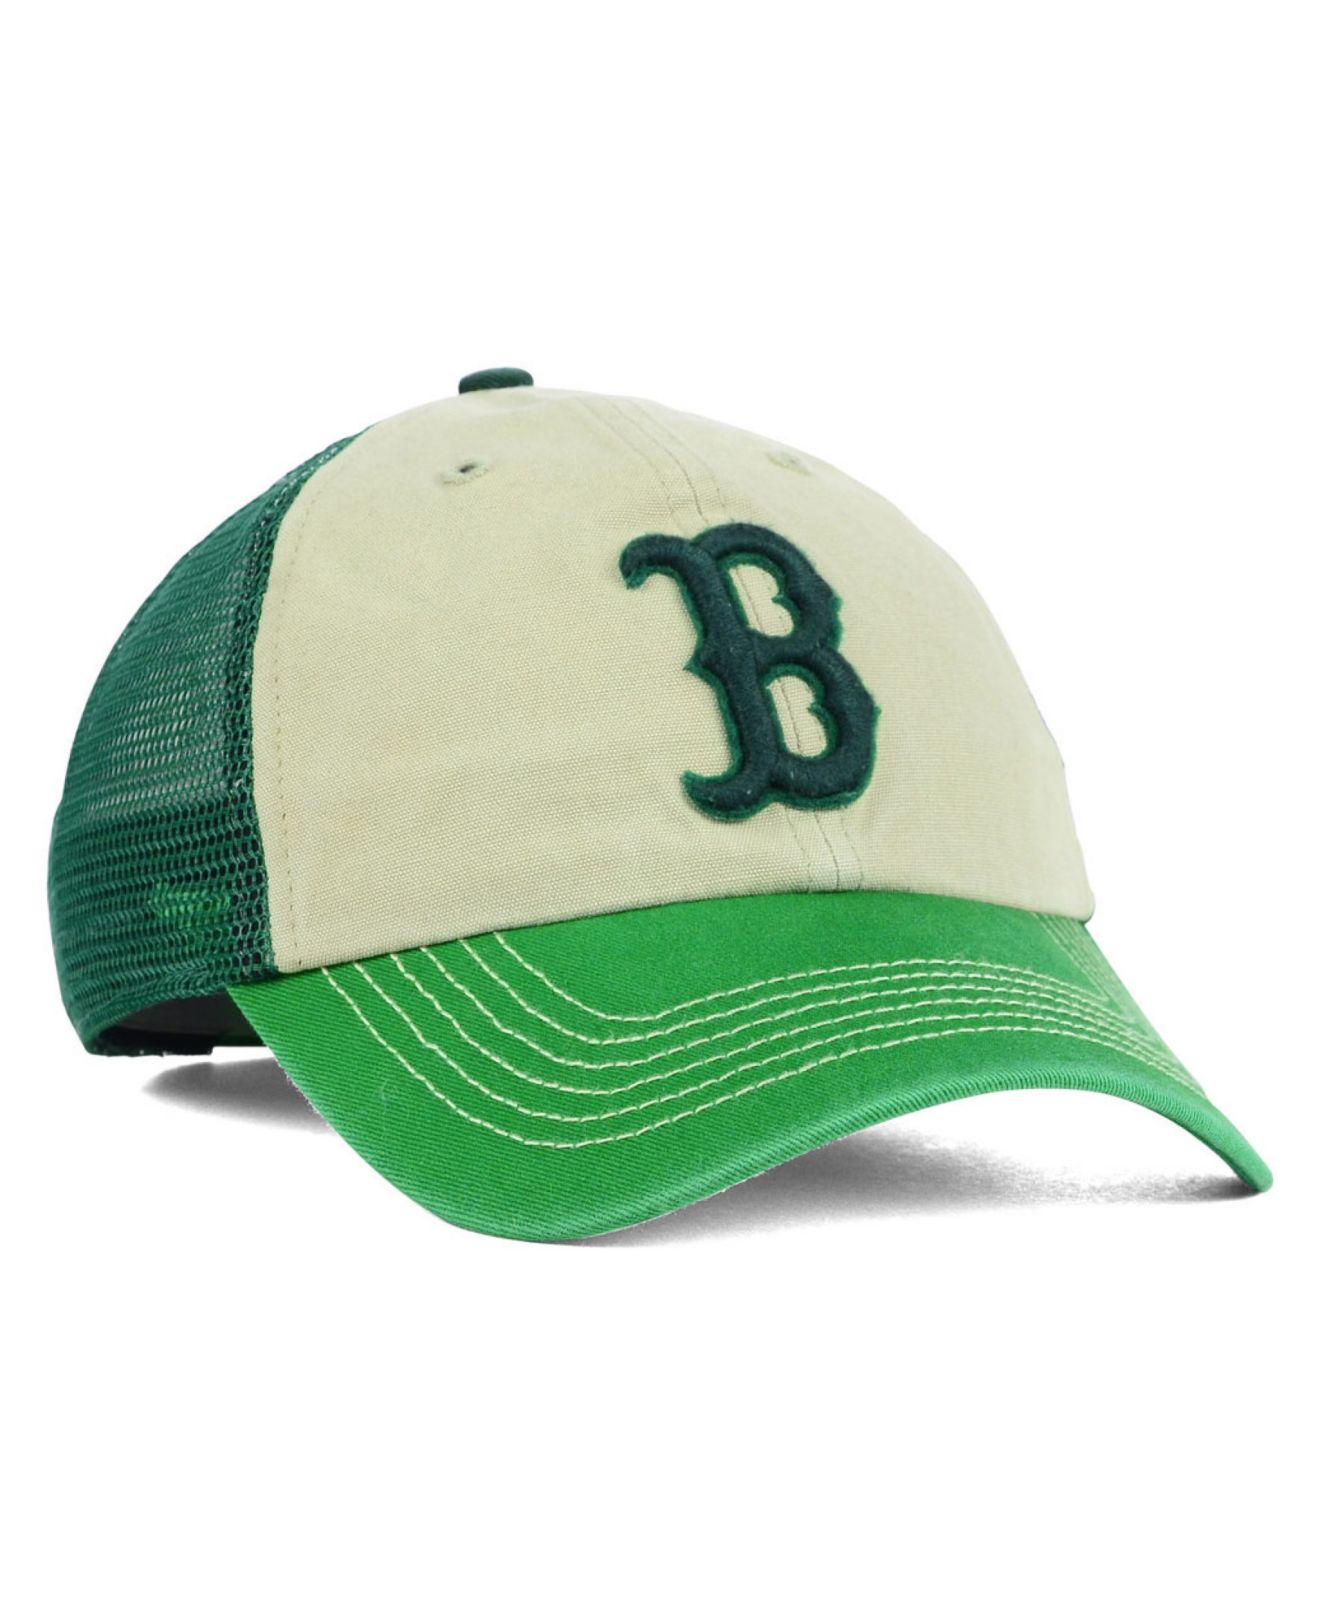 b8276250 ... snapback cap in white for men ce9fc 586eb; greece mlb boston red sox  st. pattys clean up adjustable cap green 47 b sprgw02gwsbe